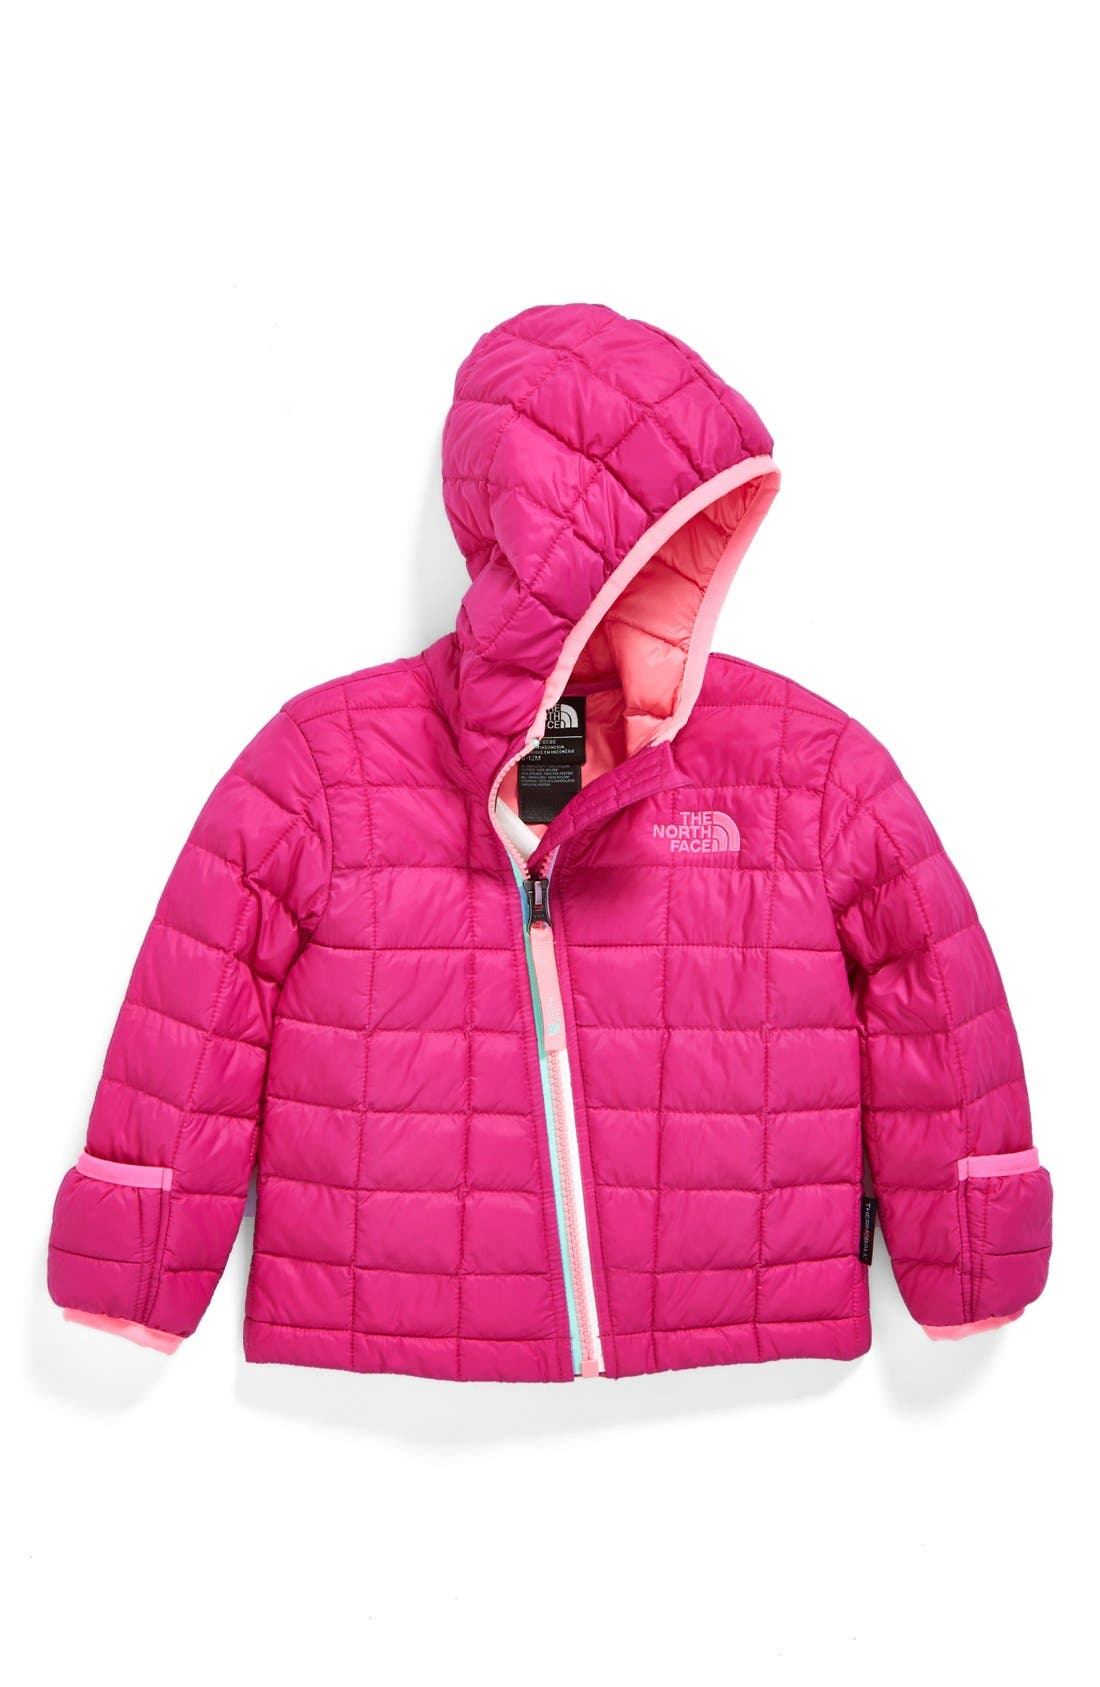 Alternate Image 1 Selected - The North Face ThermoBall™ PrimaLoft® Hoodie Jacket (Baby Girls)